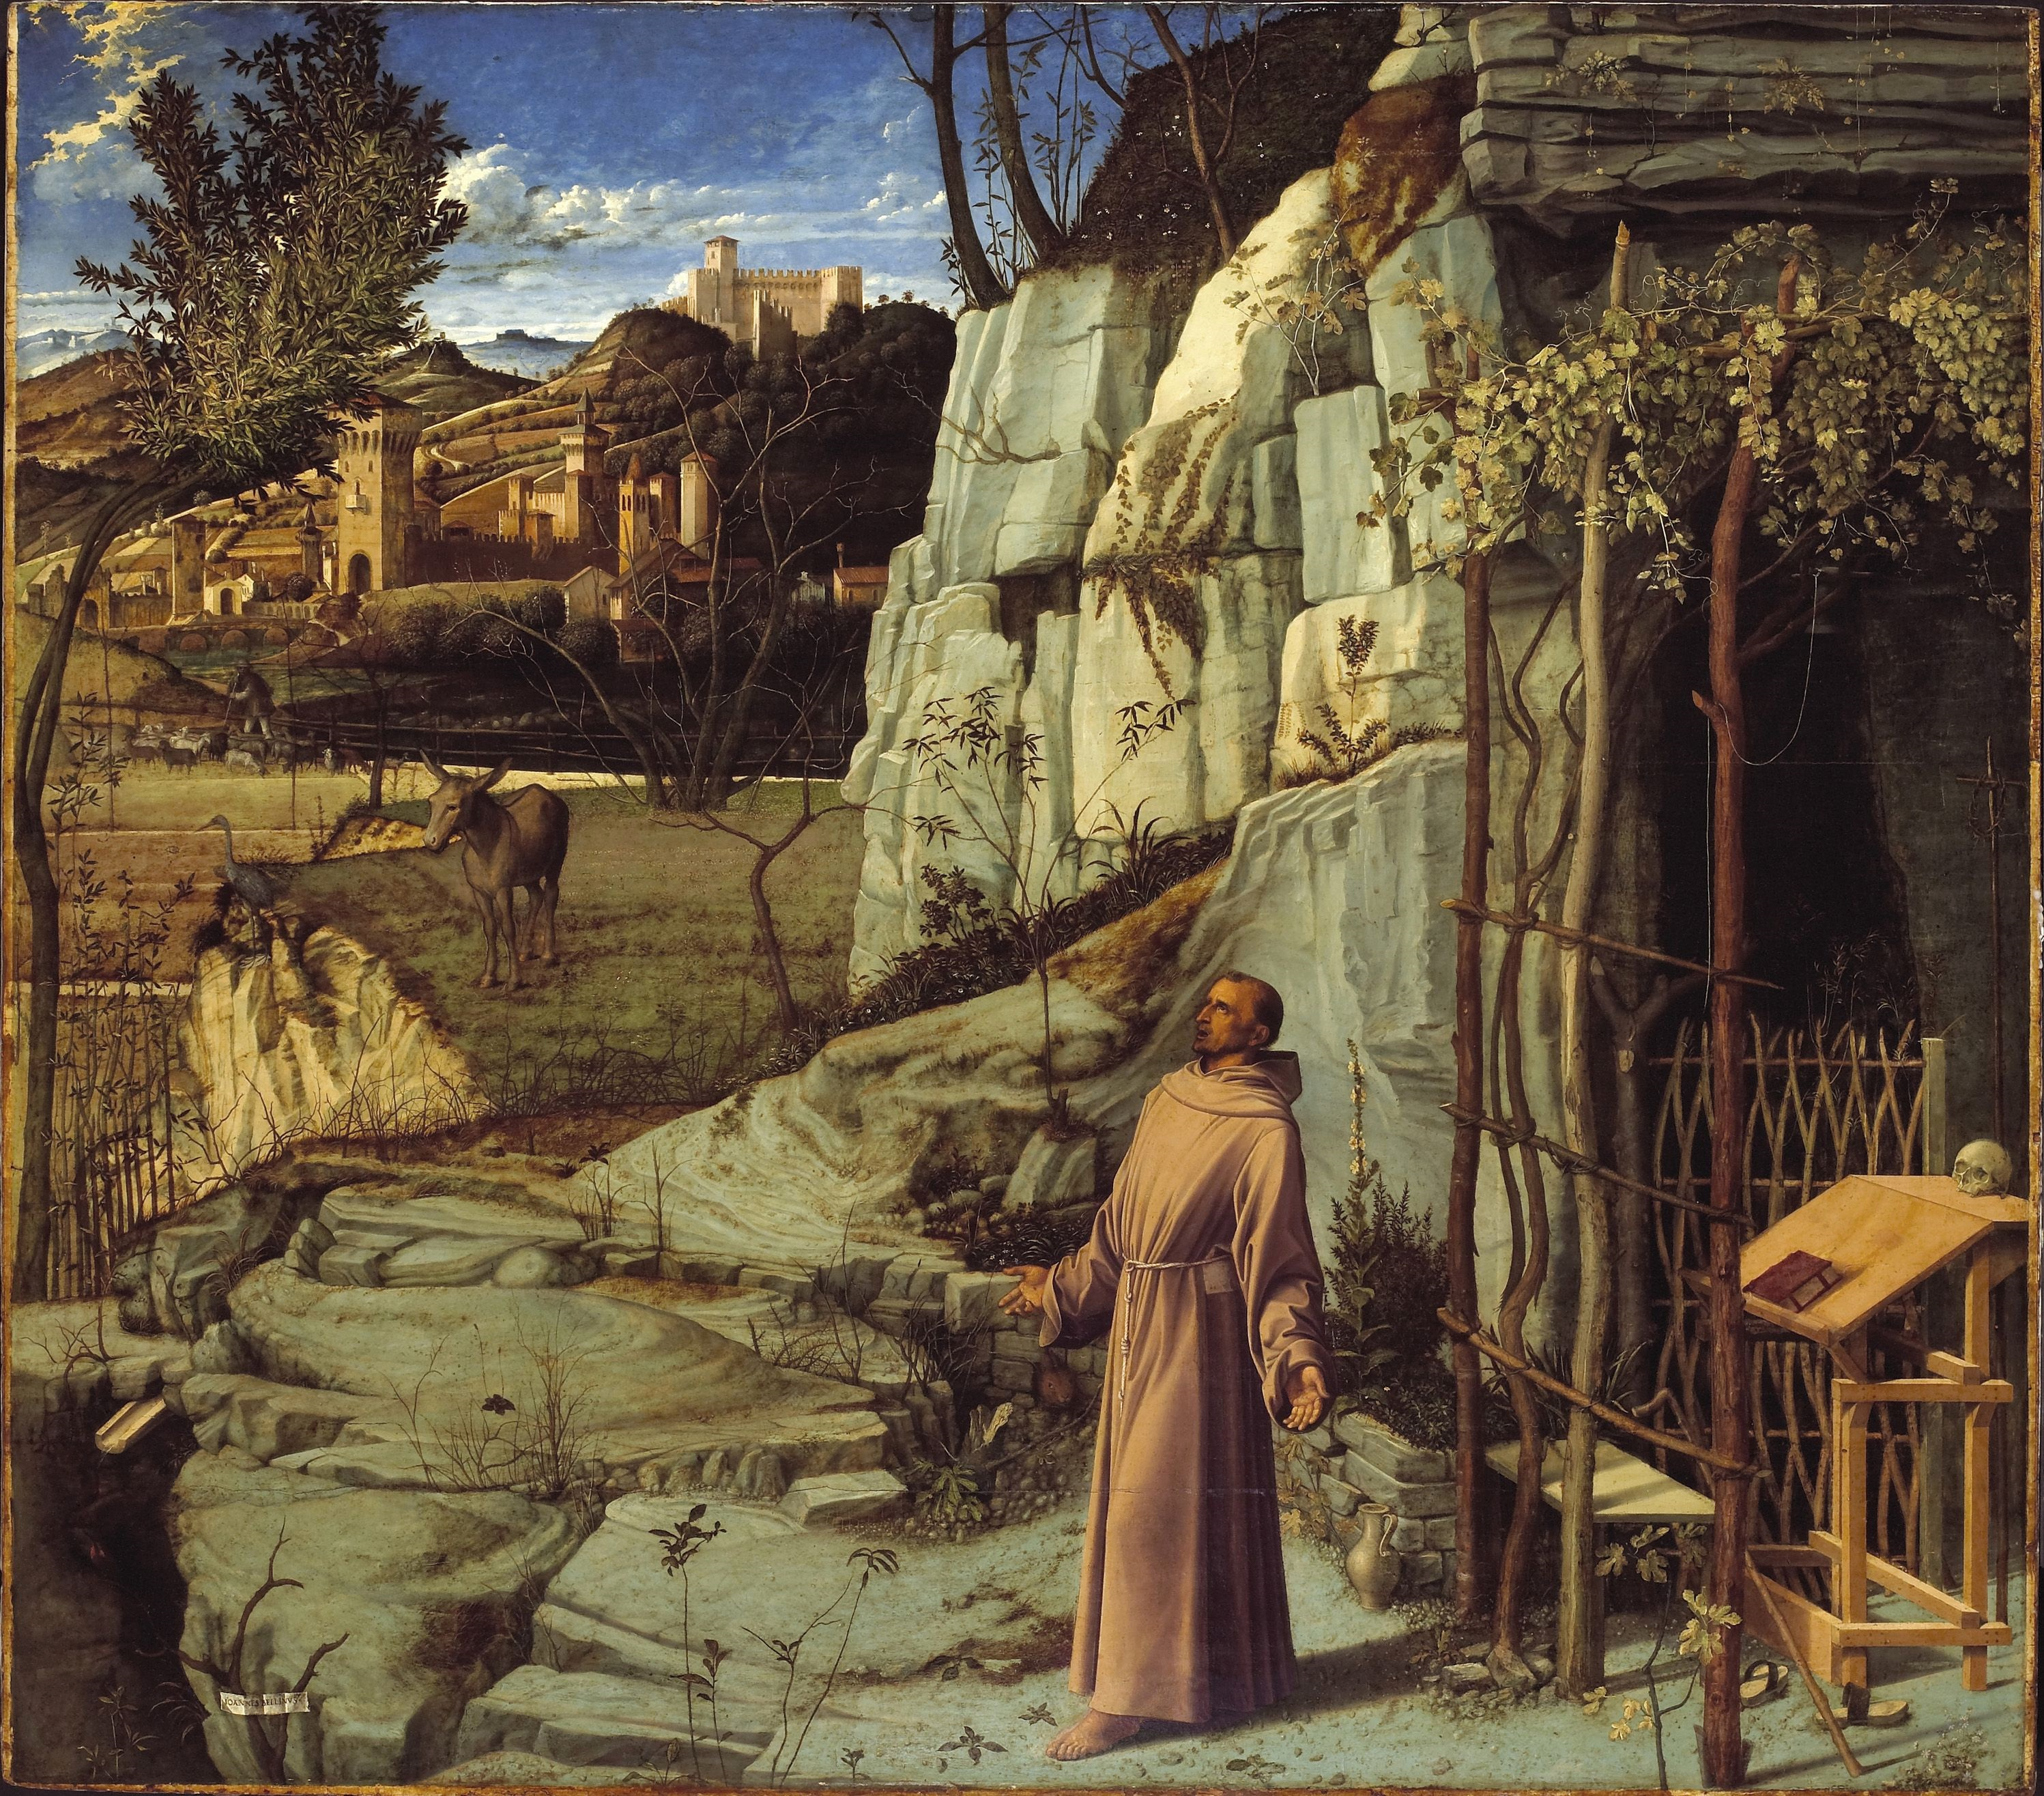 St. Francis in Ecstasy, by Giovanni Bellini, c. 1480. Frick Collection, New York, New York, United States. Via IllustratedPrayer.com